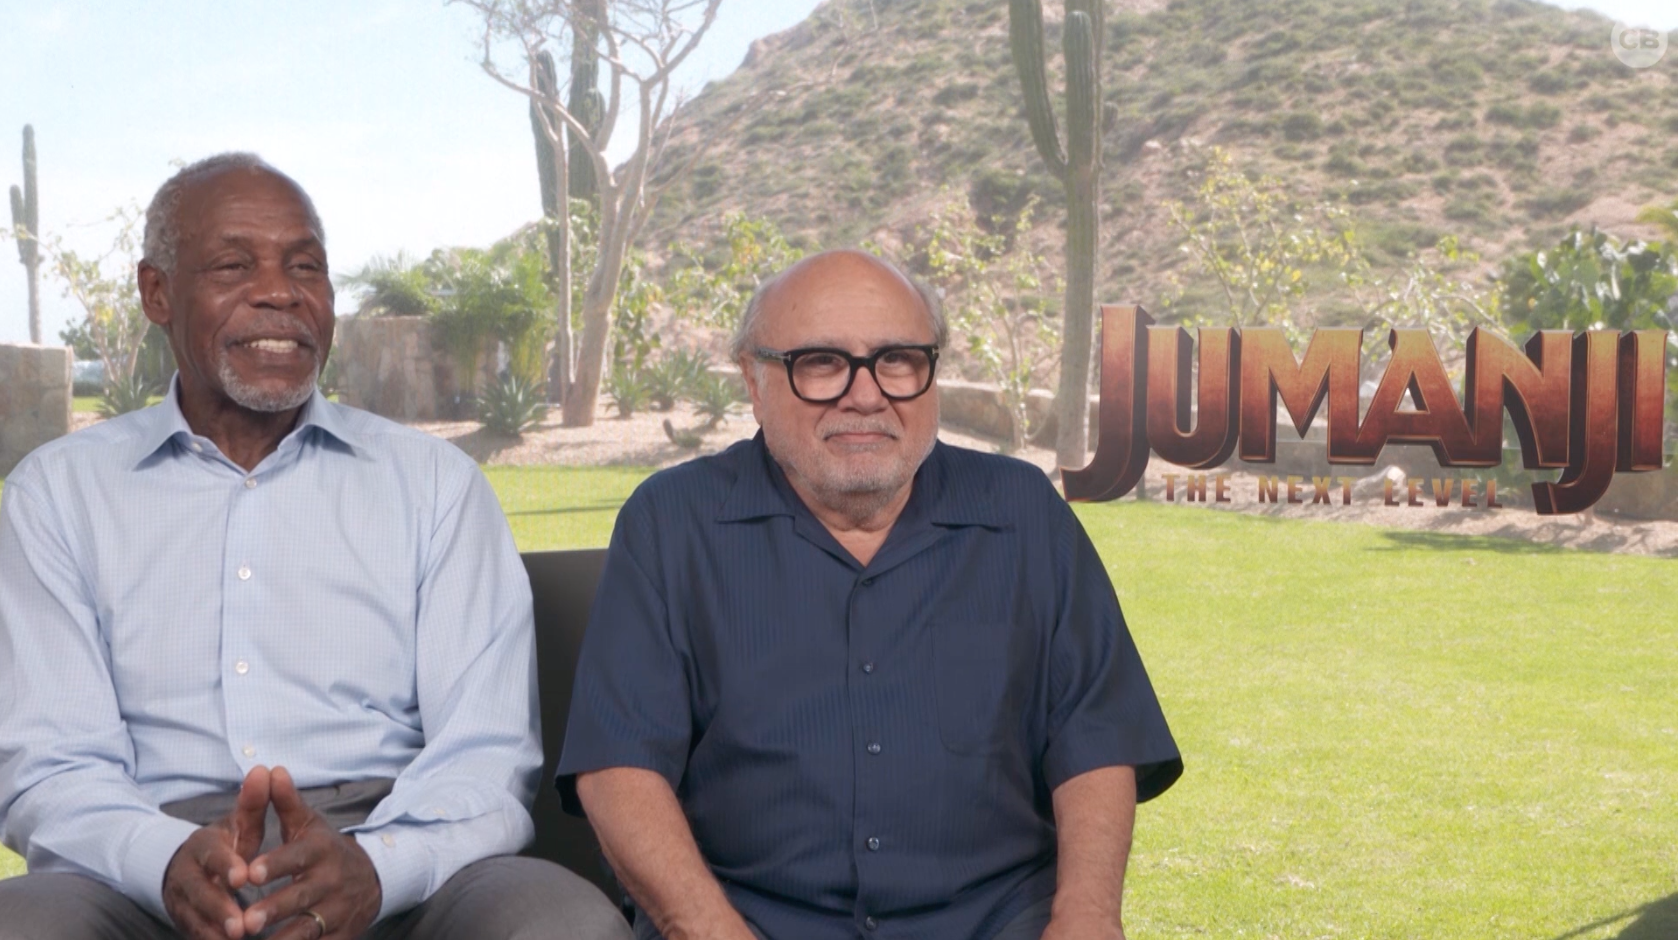 Danny Glover and Danny DeVito Talk Jumanji: The Next Level screen capture